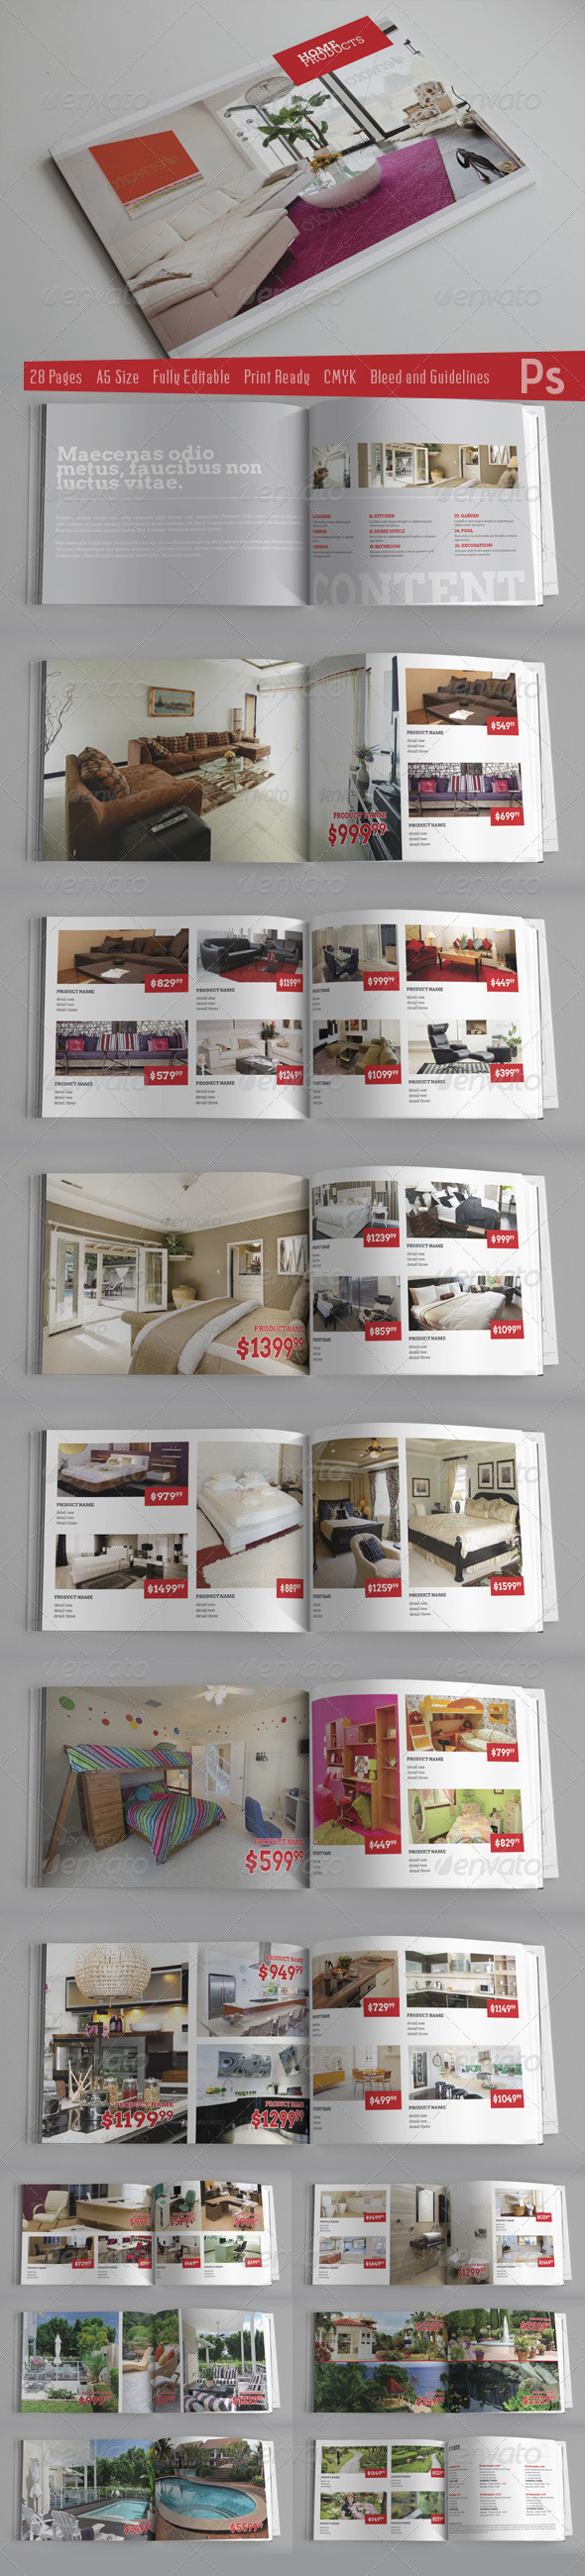 Home Products Catalog - Catalogs Brochures